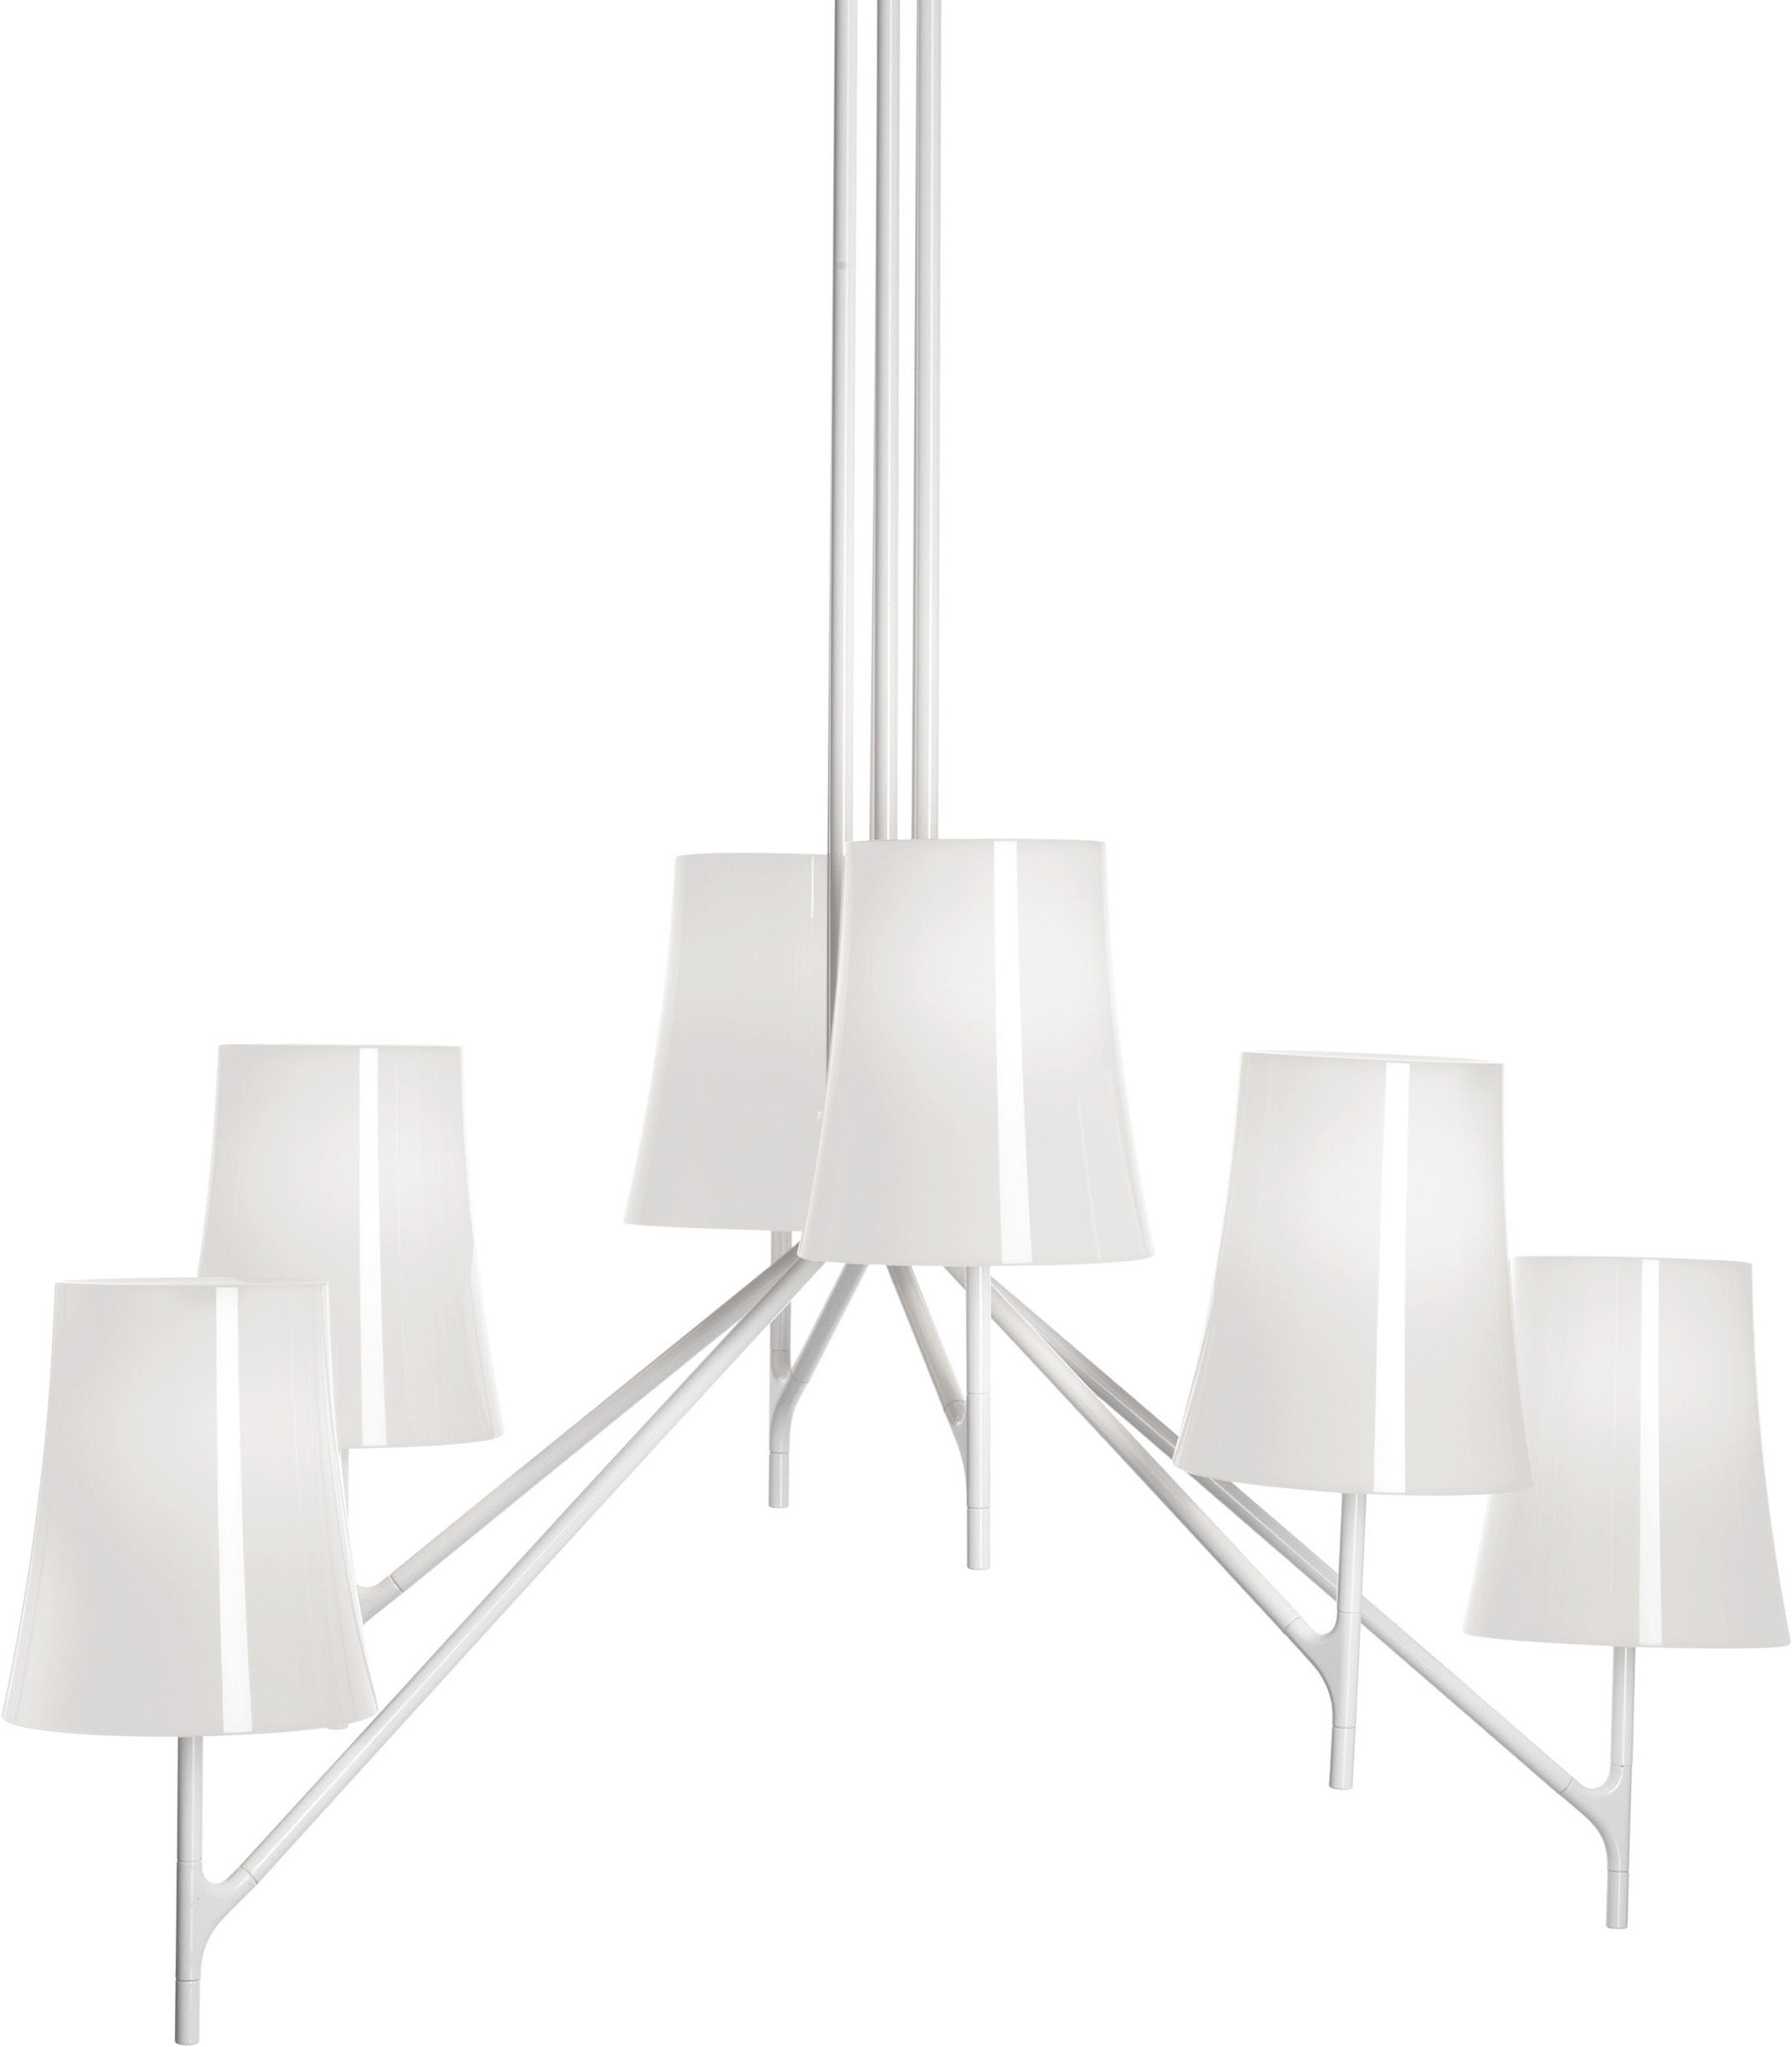 Lighting - Pendant Lighting - Birdie Pendant - Nine arms - Fix height by Foscarini - 9 arms - White - Polycarbonate, Varnished stainless steel